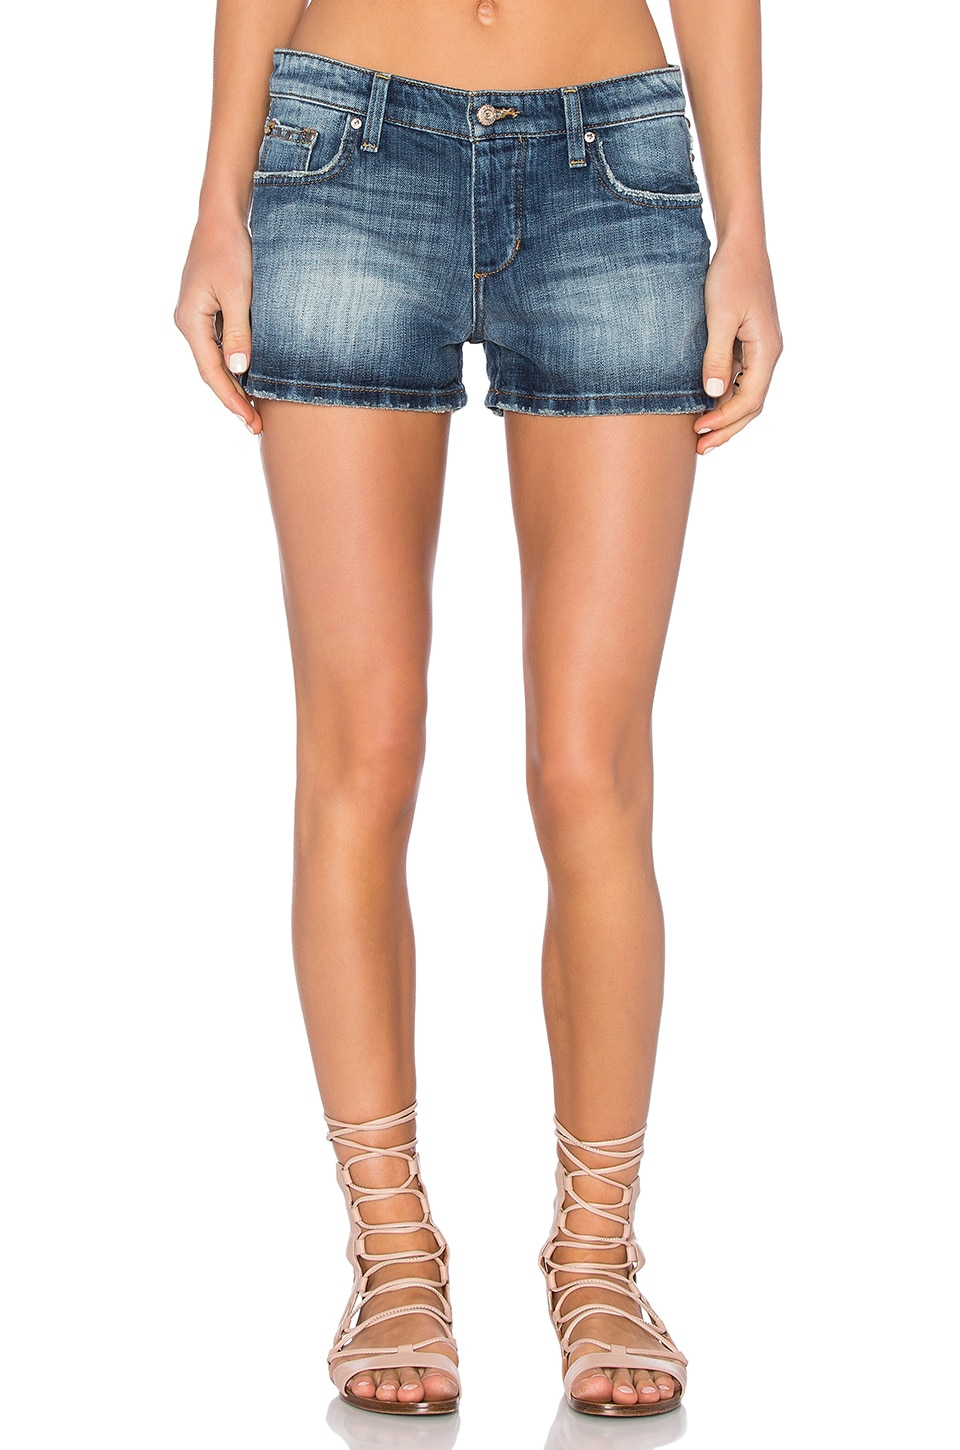 Joe's Jeans Janelle Collector's Edition The Billie Short in Medium Light Blue